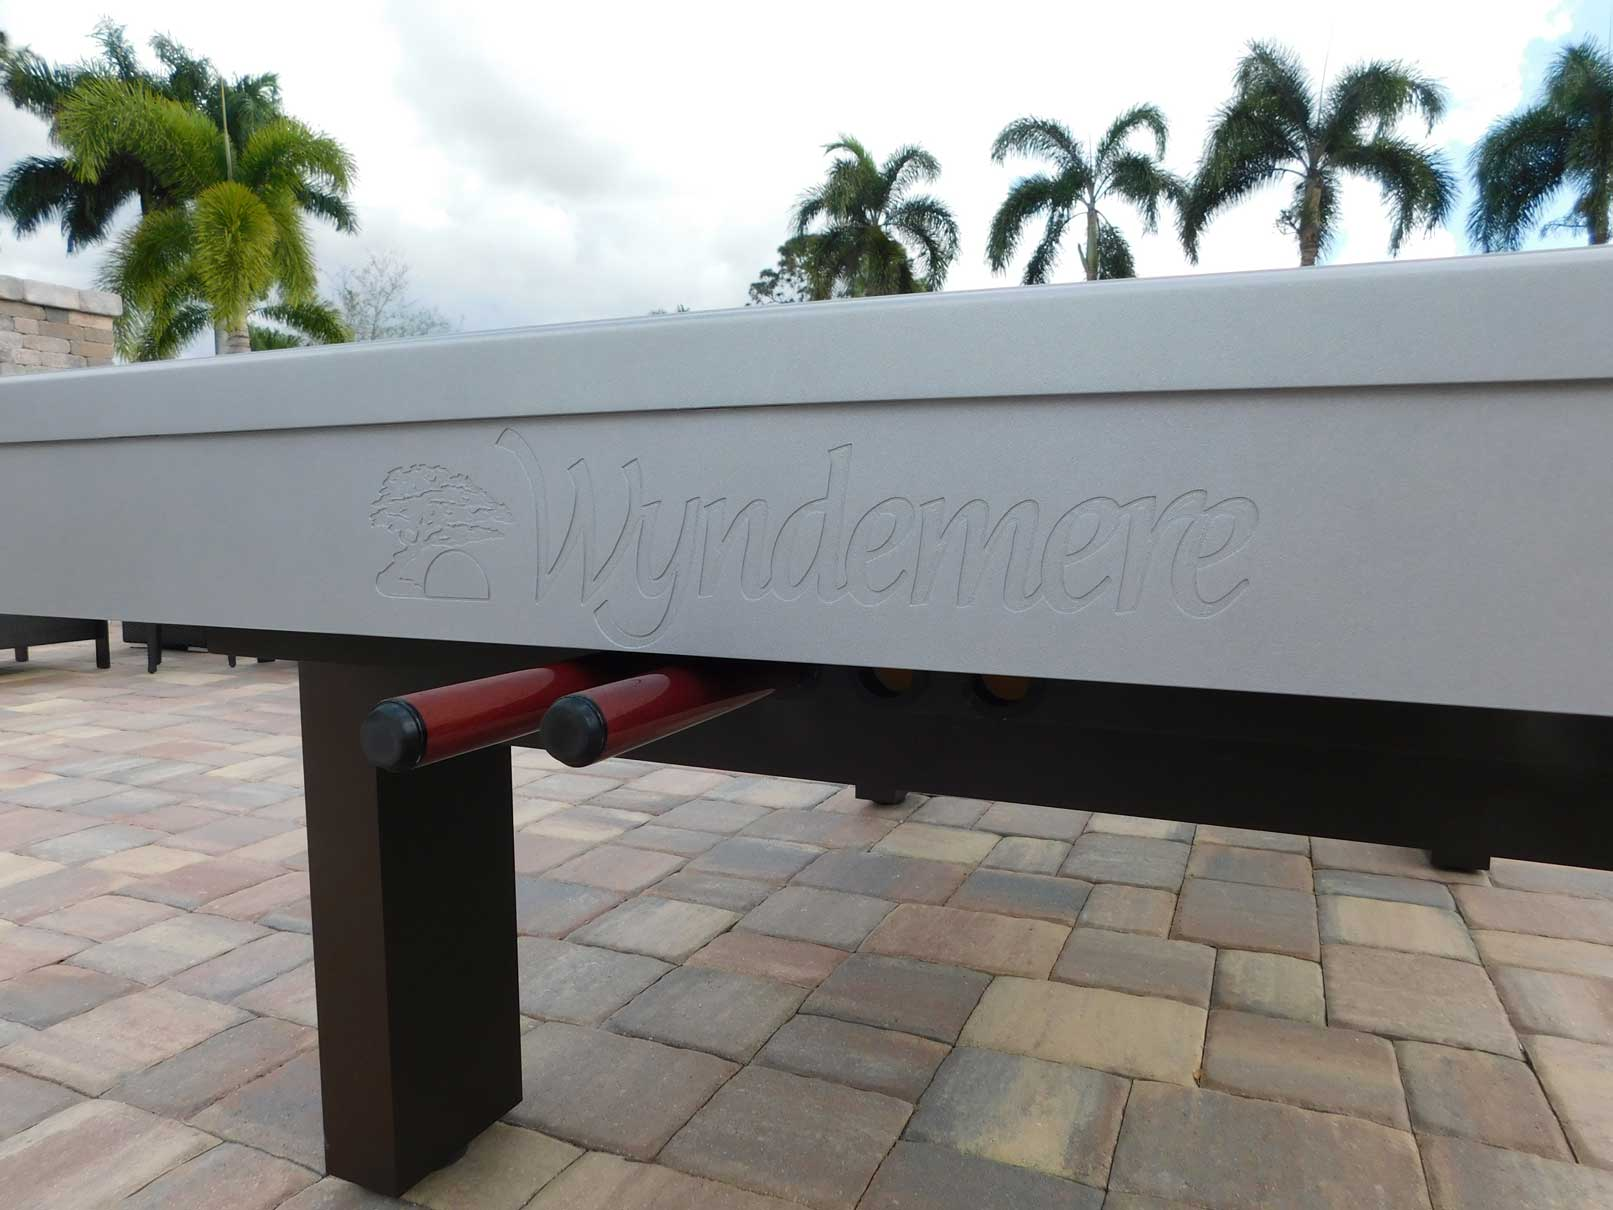 Custom outdoor pool table with engraved company logo from R&R Outdoors All Weather Billiards